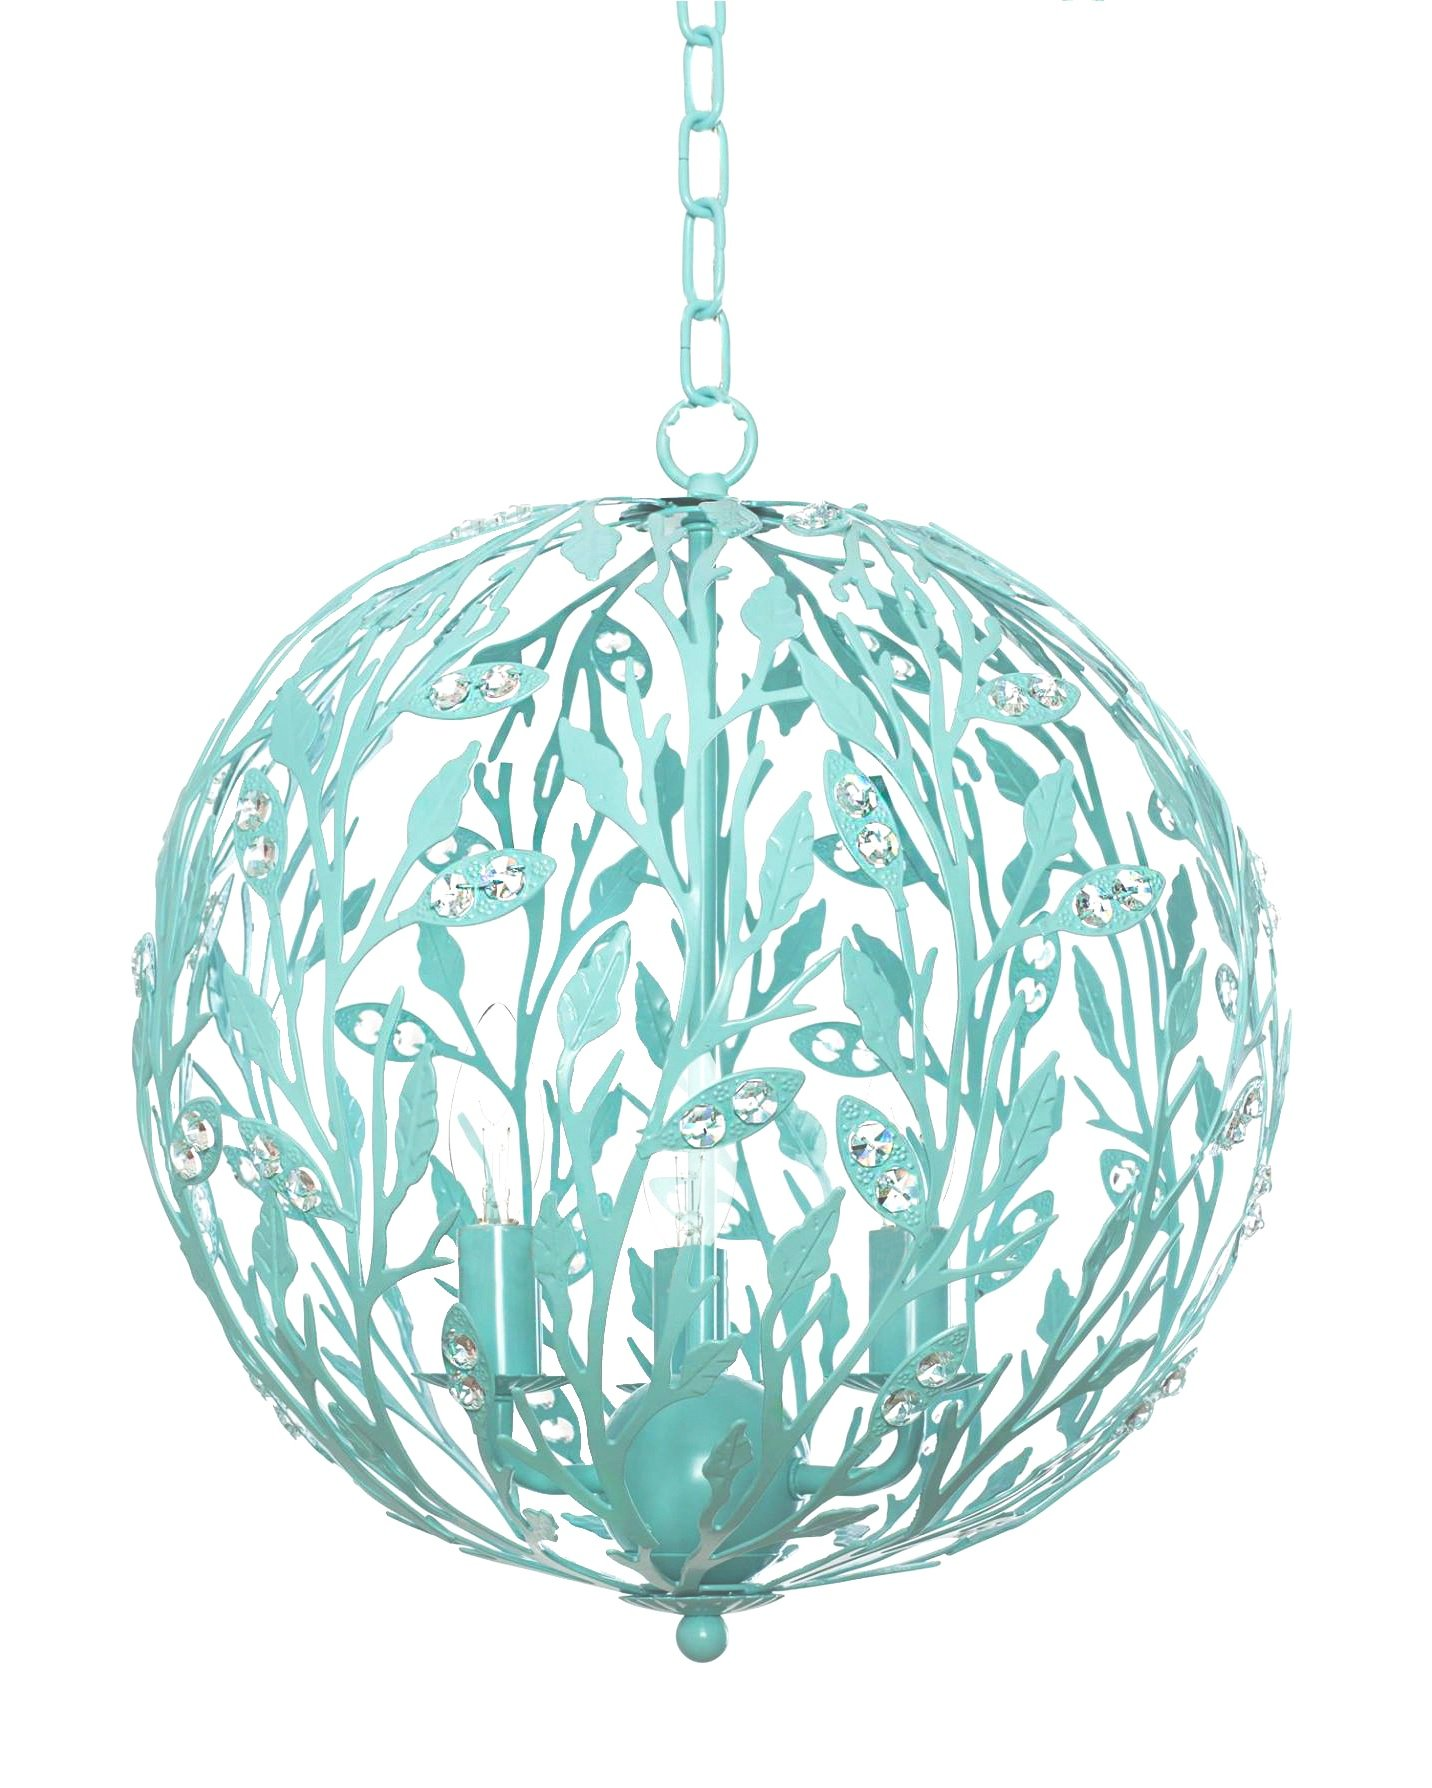 Firefly Kids Lighting - Luna Light Fixture - Turquoise, 15-Inches Diameter, 4-Light E12 60W each (not included), Hand-Wrought Iron, Authentic Crystals, Dimmable